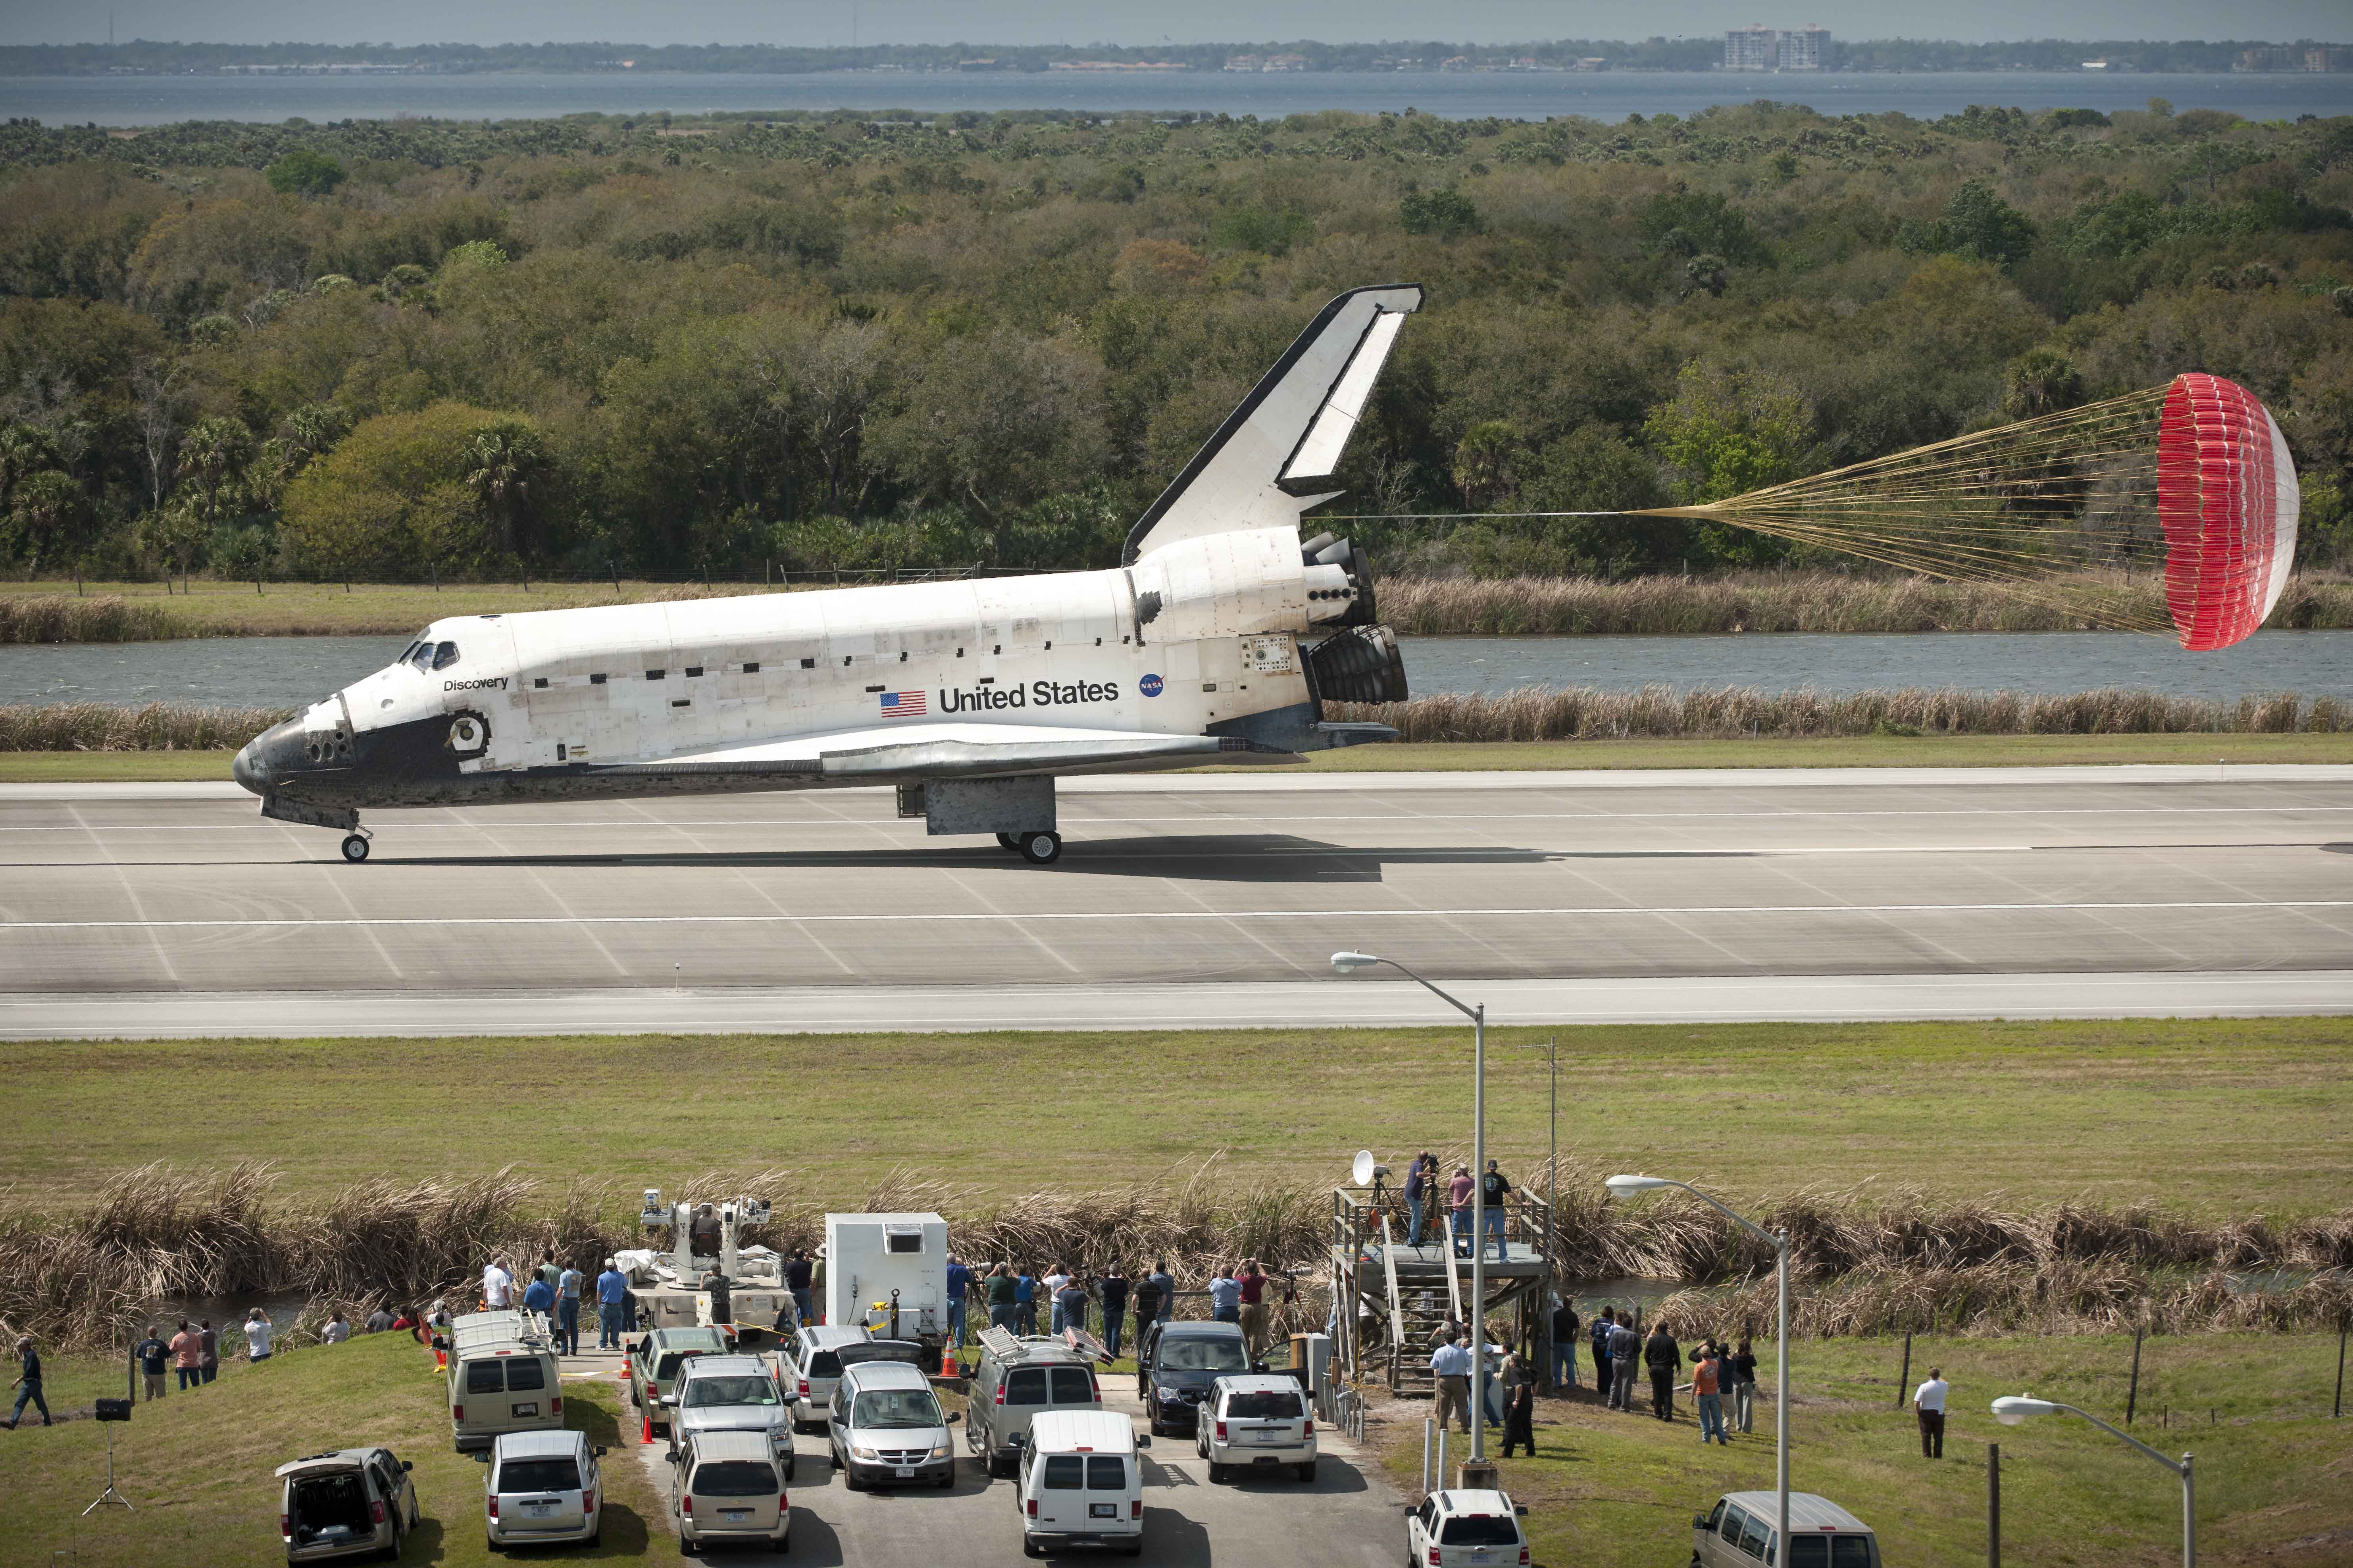 Space Shuttle Landing Today Tracking - Pics about space